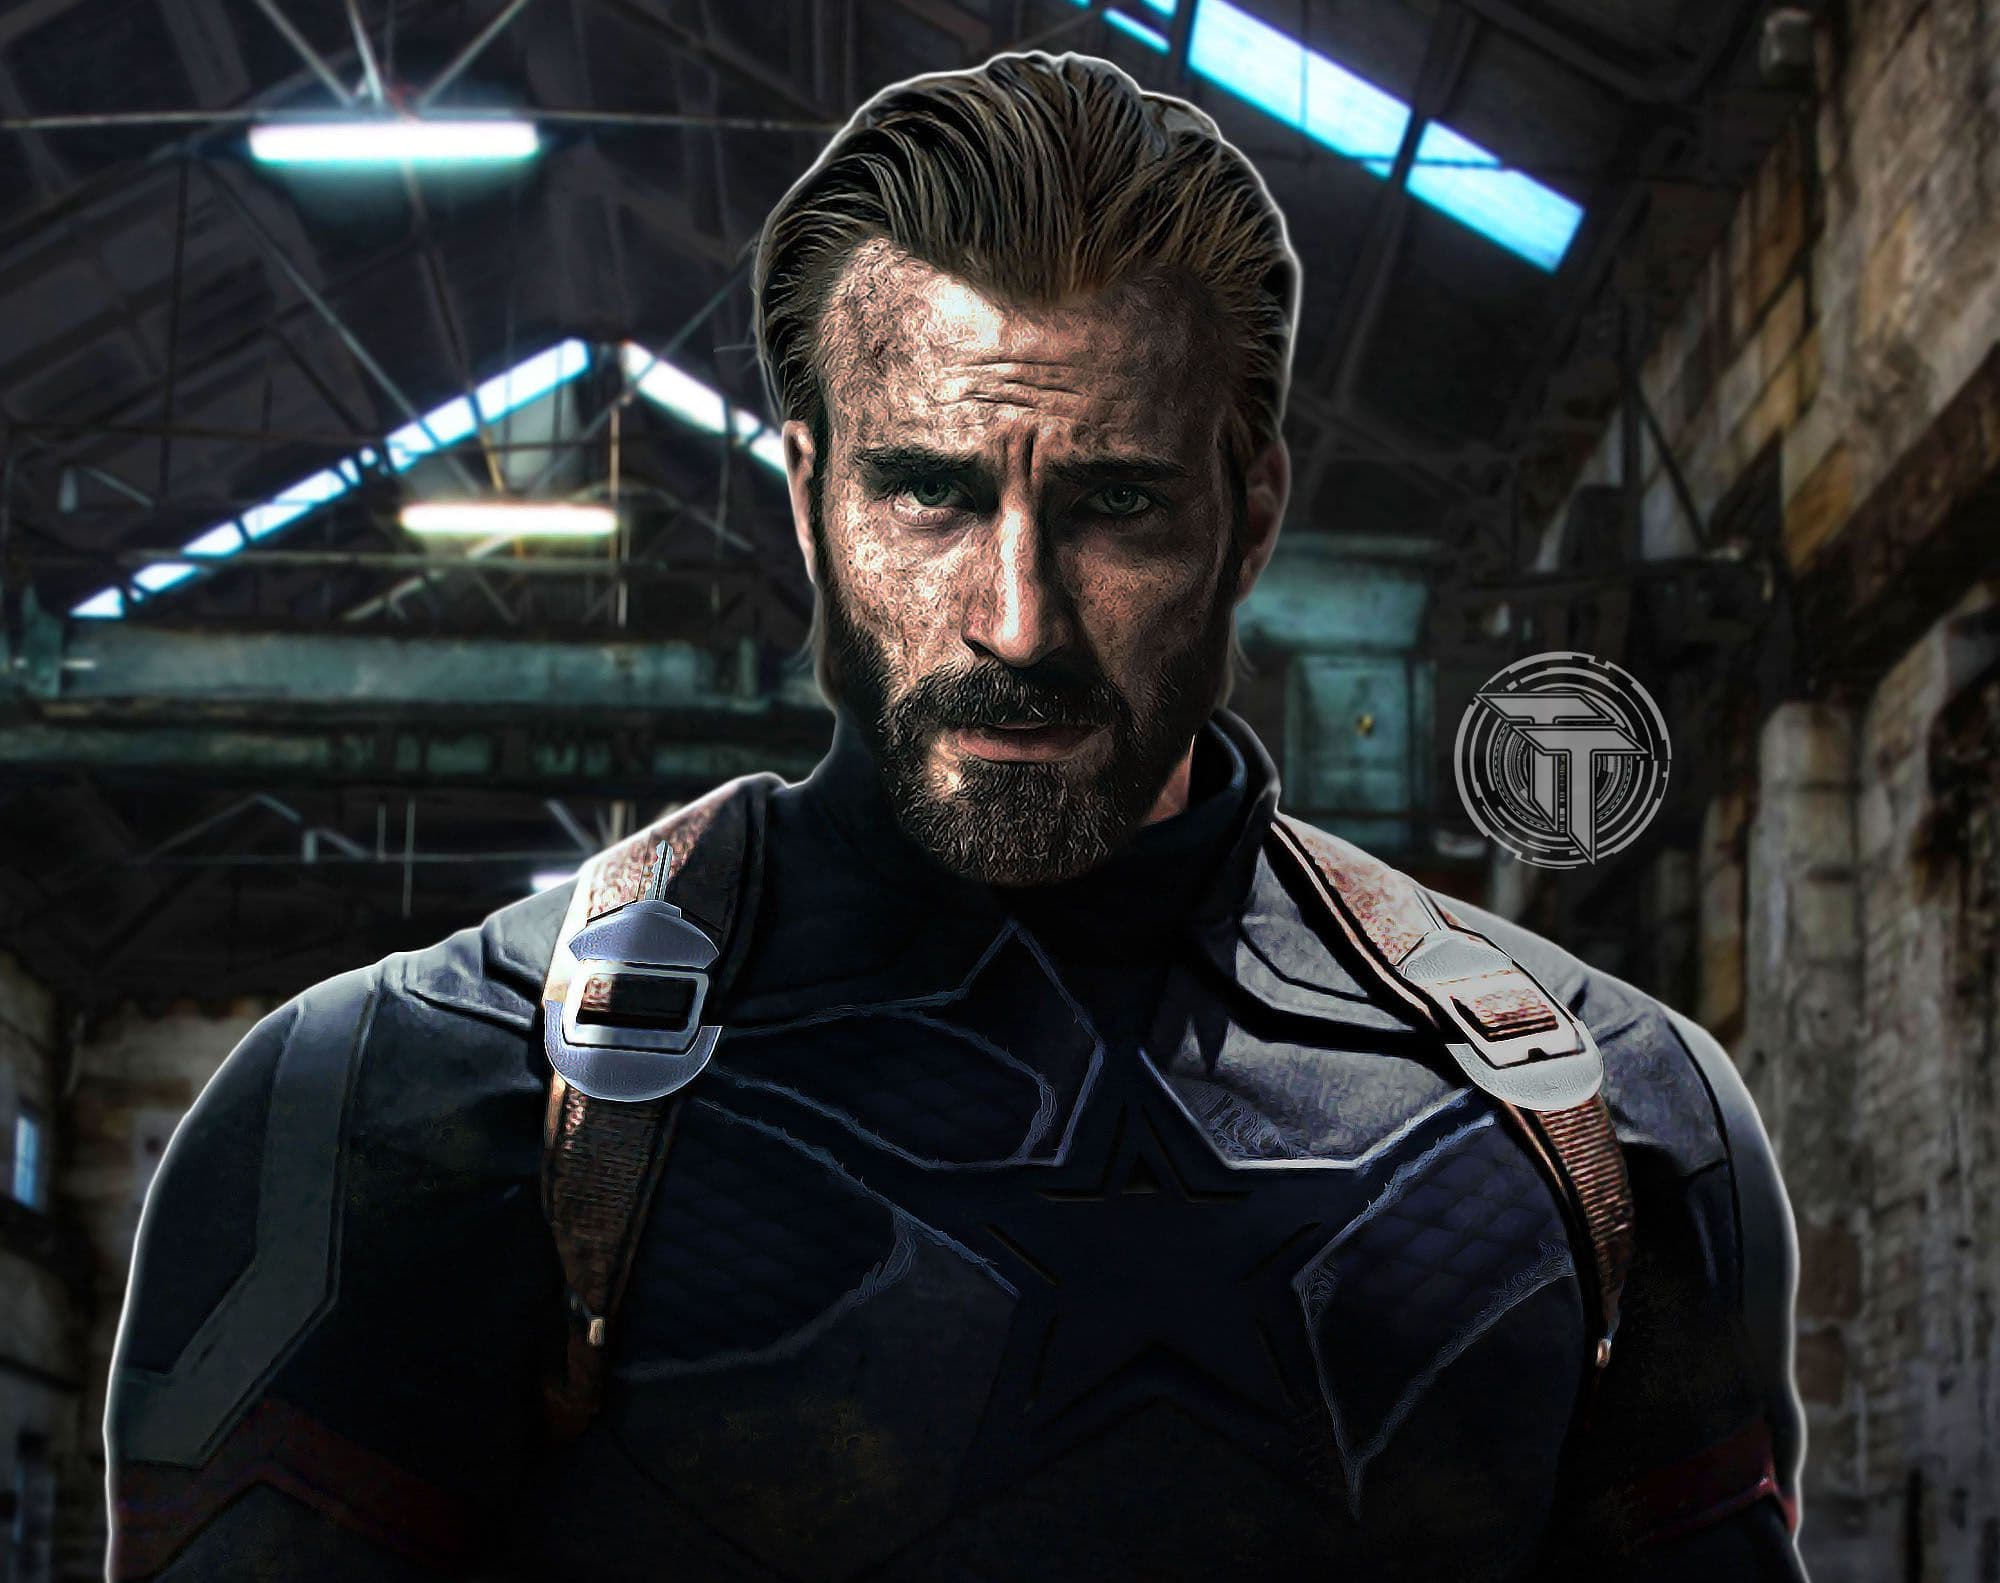 captain america infinity war beard photo - 1